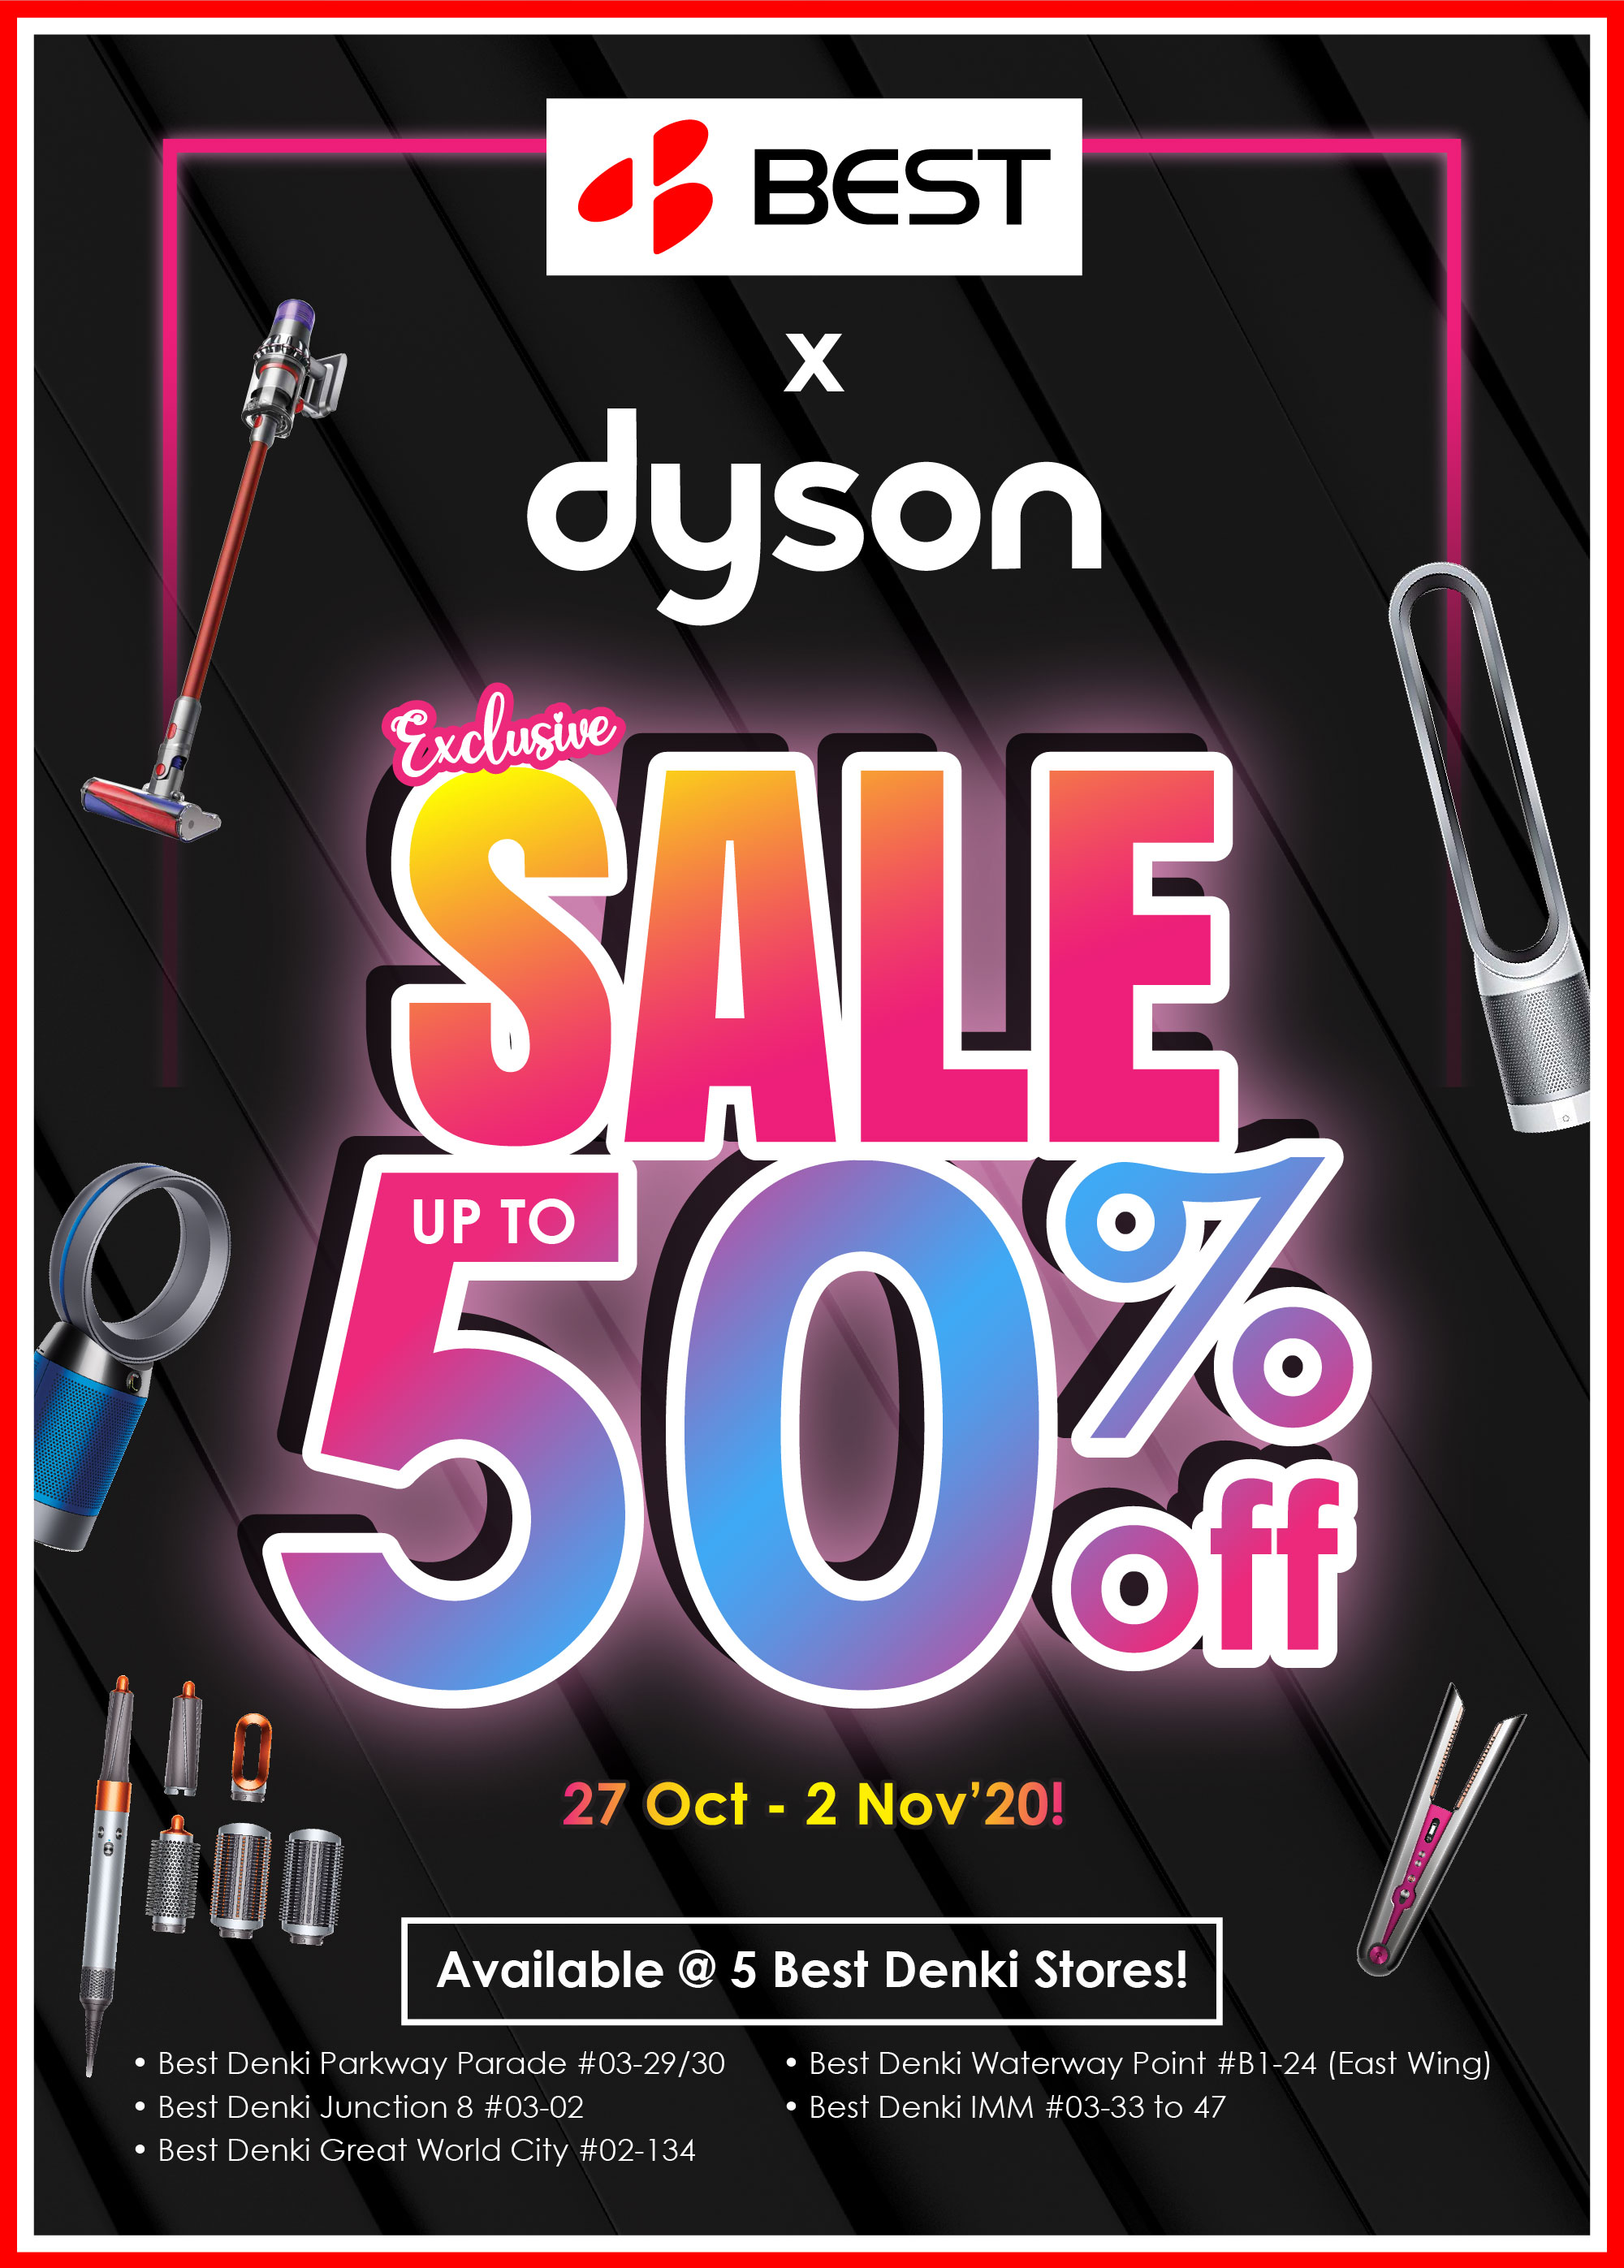 Best Denki: Up to 50% OFF Dyson Products Restocked till 02 Nov 2020